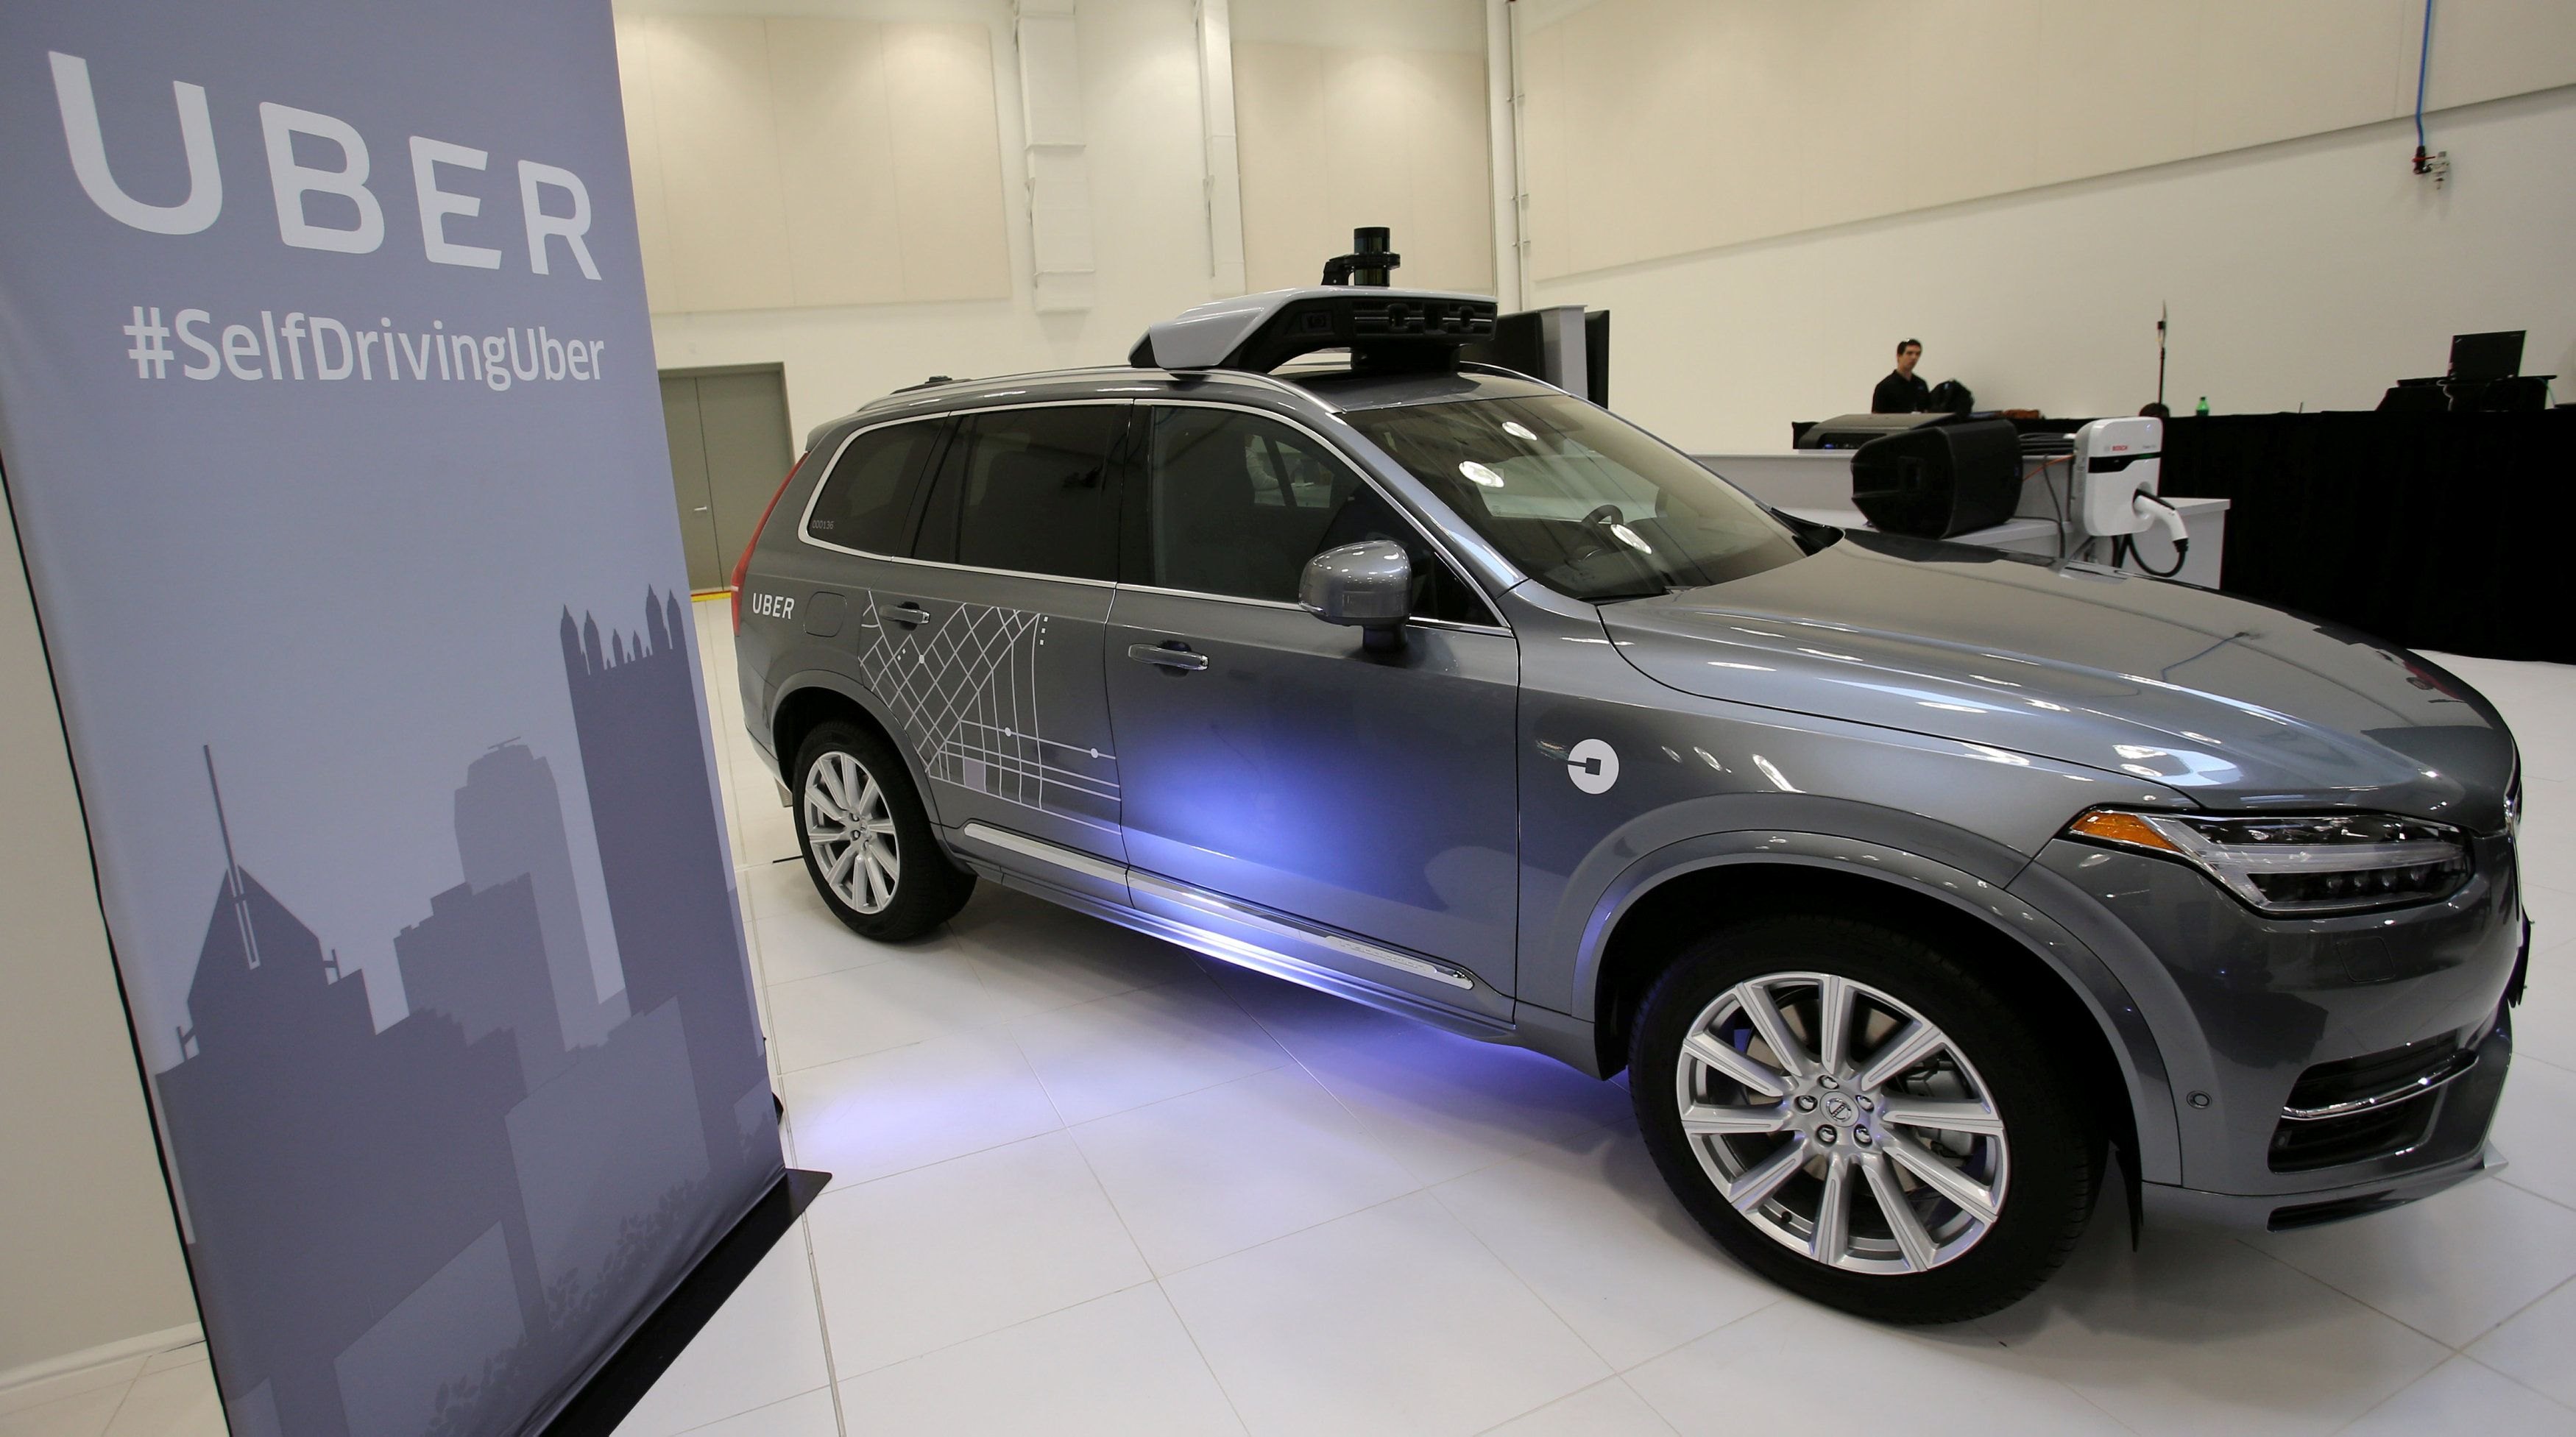 FILE PHOTO: Uber\'s Volvo XC90 self driving car is shown during a demonstration of self-driving automotive technology in Pittsburgh, Pennsylvania, U.S. September 13, 2016. REUTERS/Aaron Josefczyk/File Photo